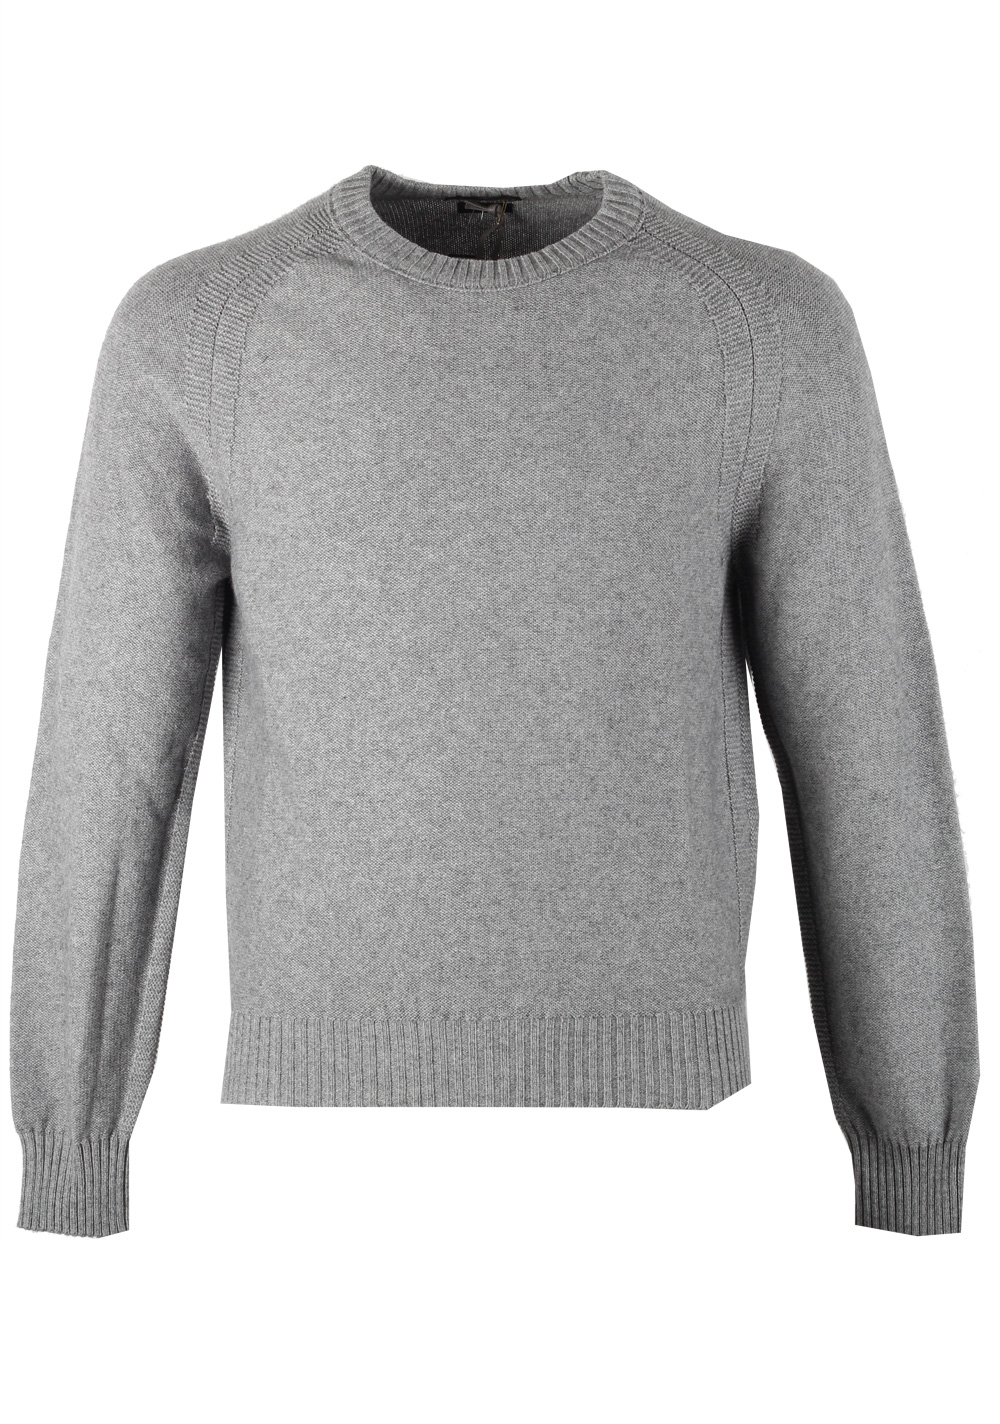 TOM FORD Gray Crew Neck Sweater Size 48 / 38R U.S. In Cashmere Blend | Costume Limité